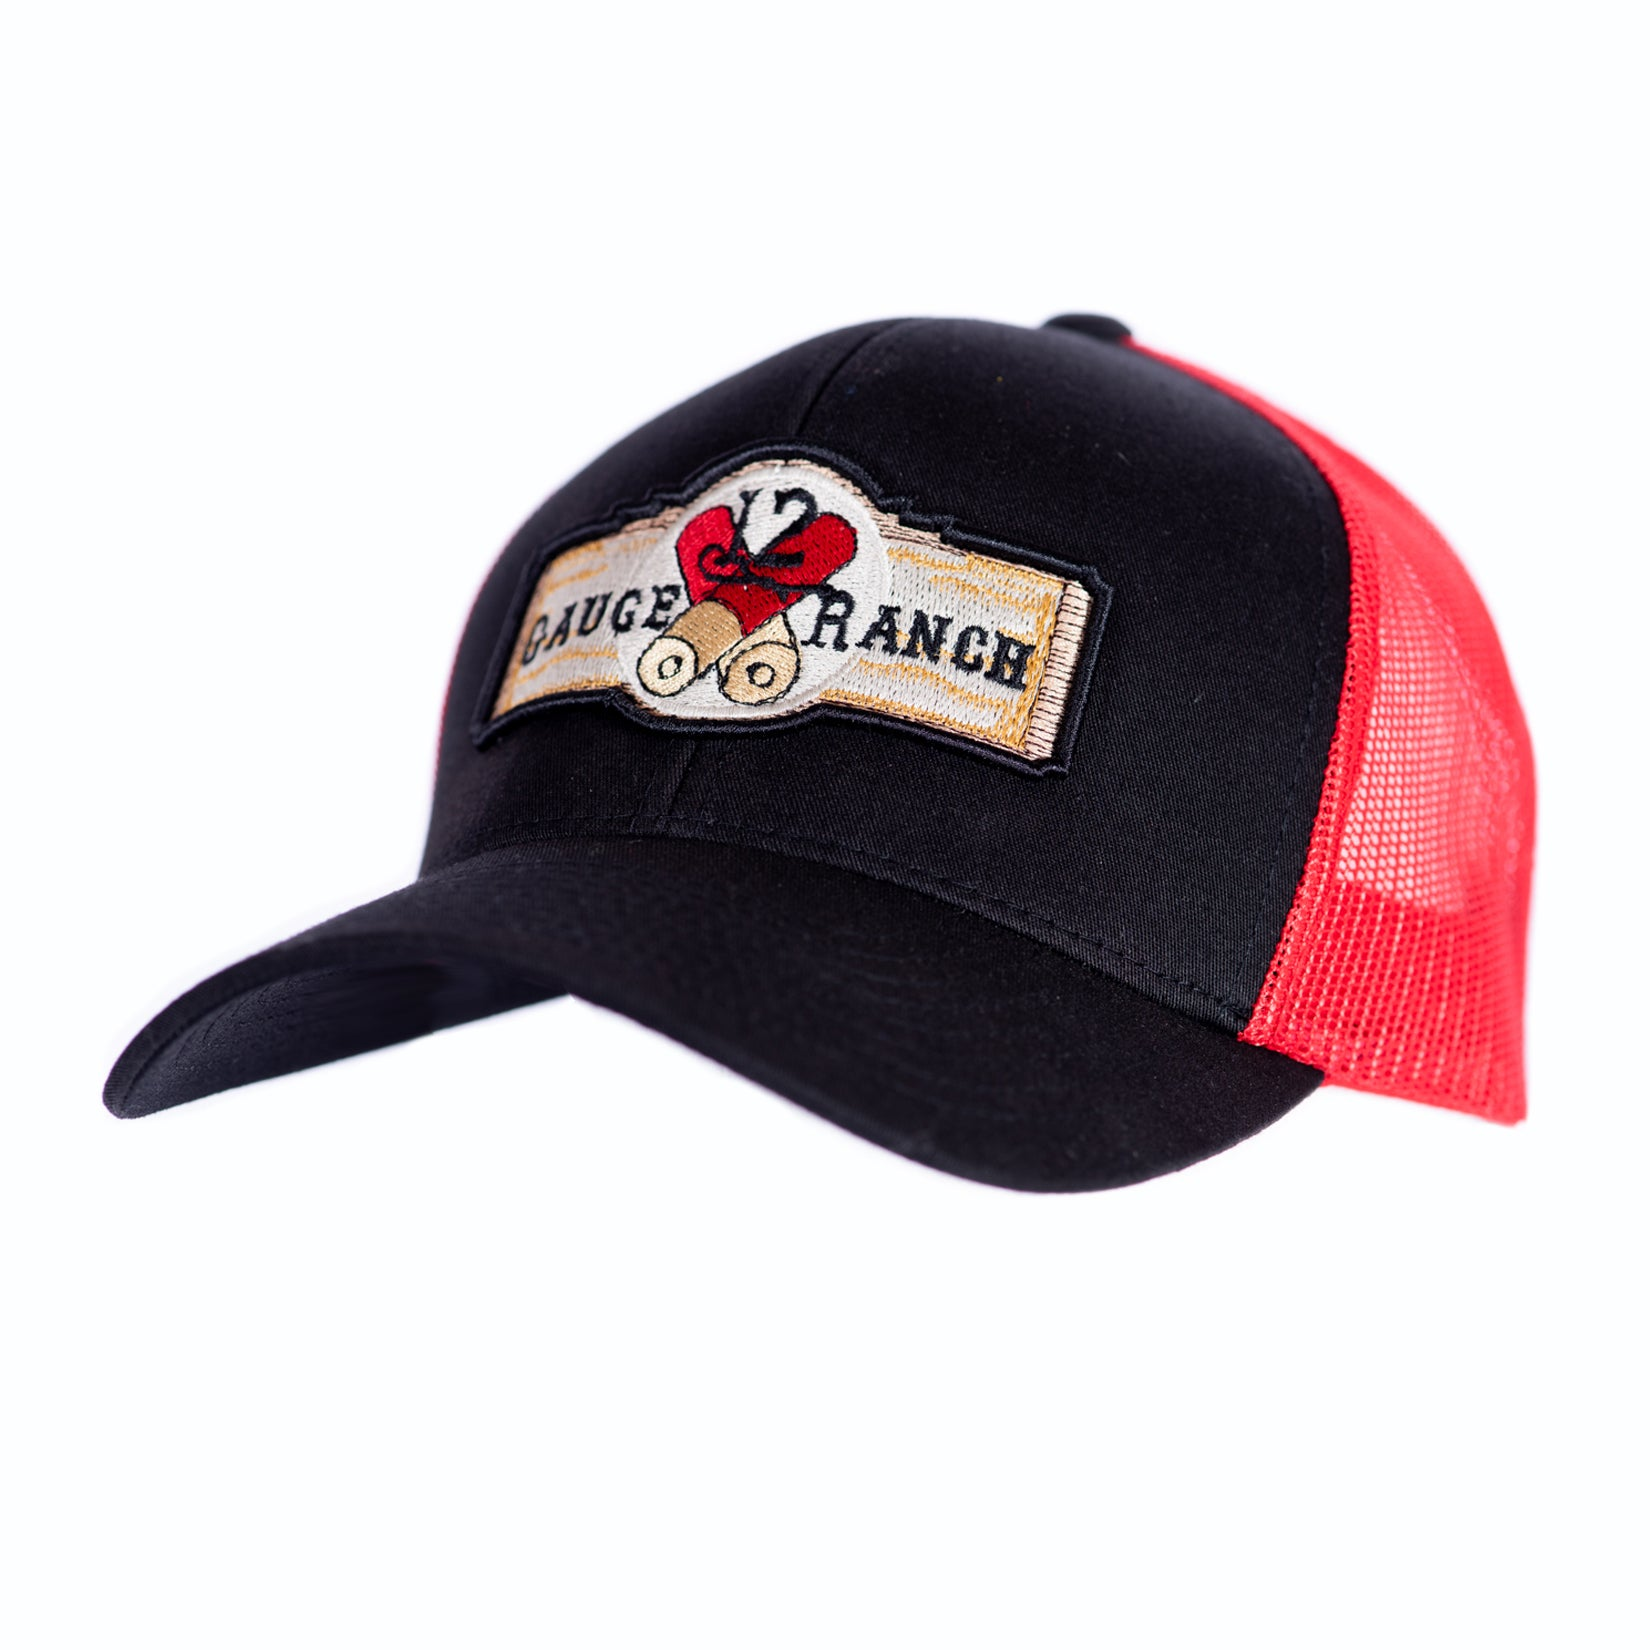 12 Gauge Ranch Baseball Hat Black and Red (BBH104RB), Hats, 12 Gauge Ranch, 12 Gauge Ranch 12 Gauge Ranch